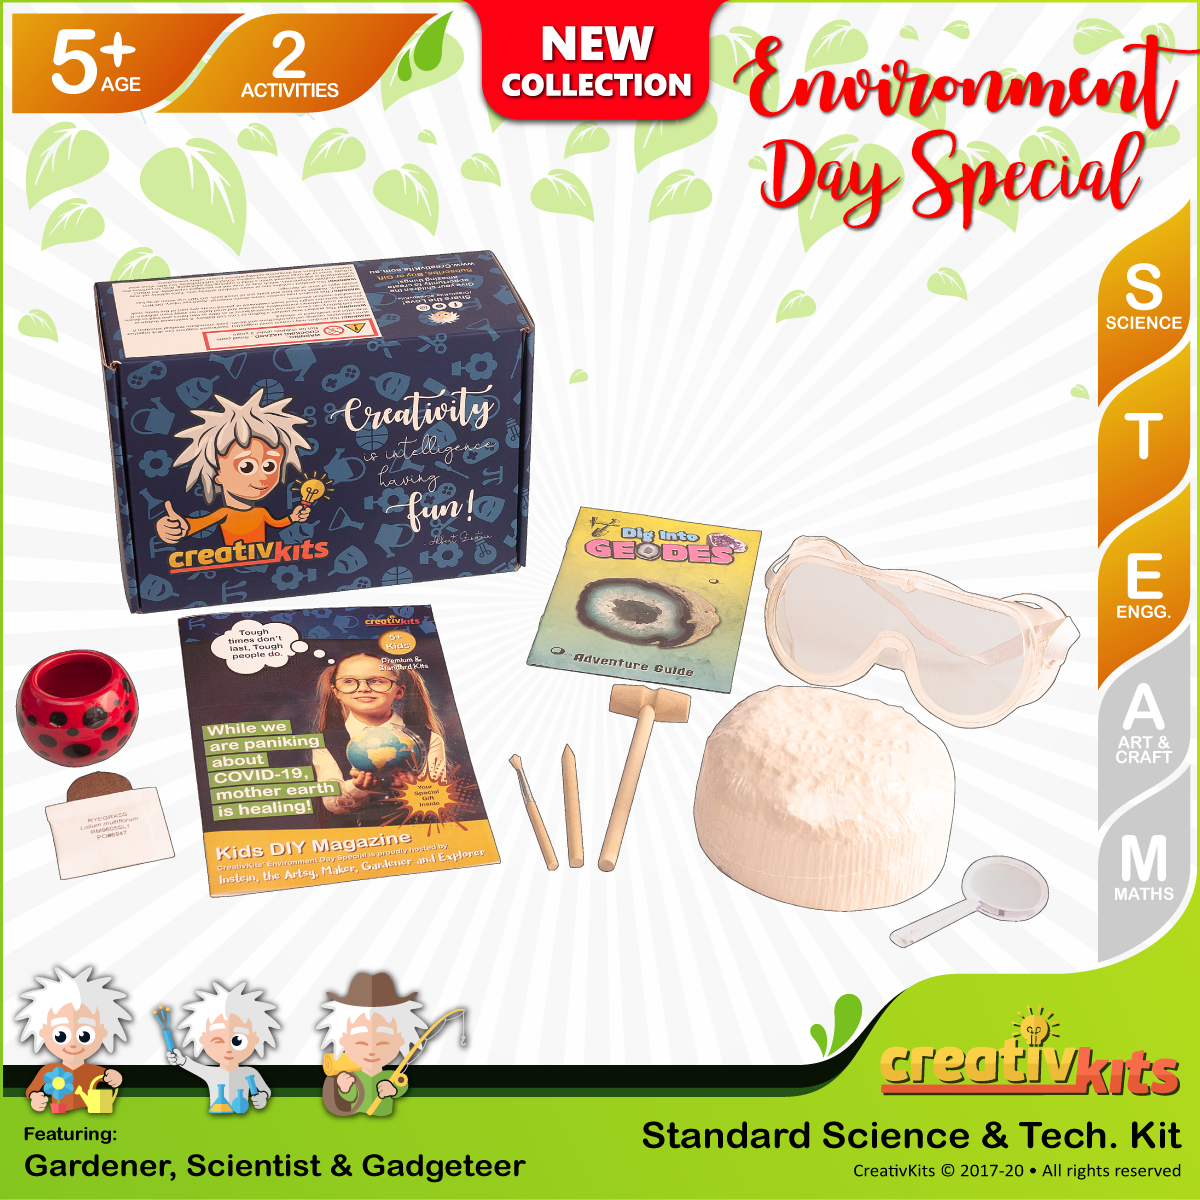 May Standard Science & Tech. Kit • Age 5 plus • Dig Your Own Geodes and Grow Grass Hair